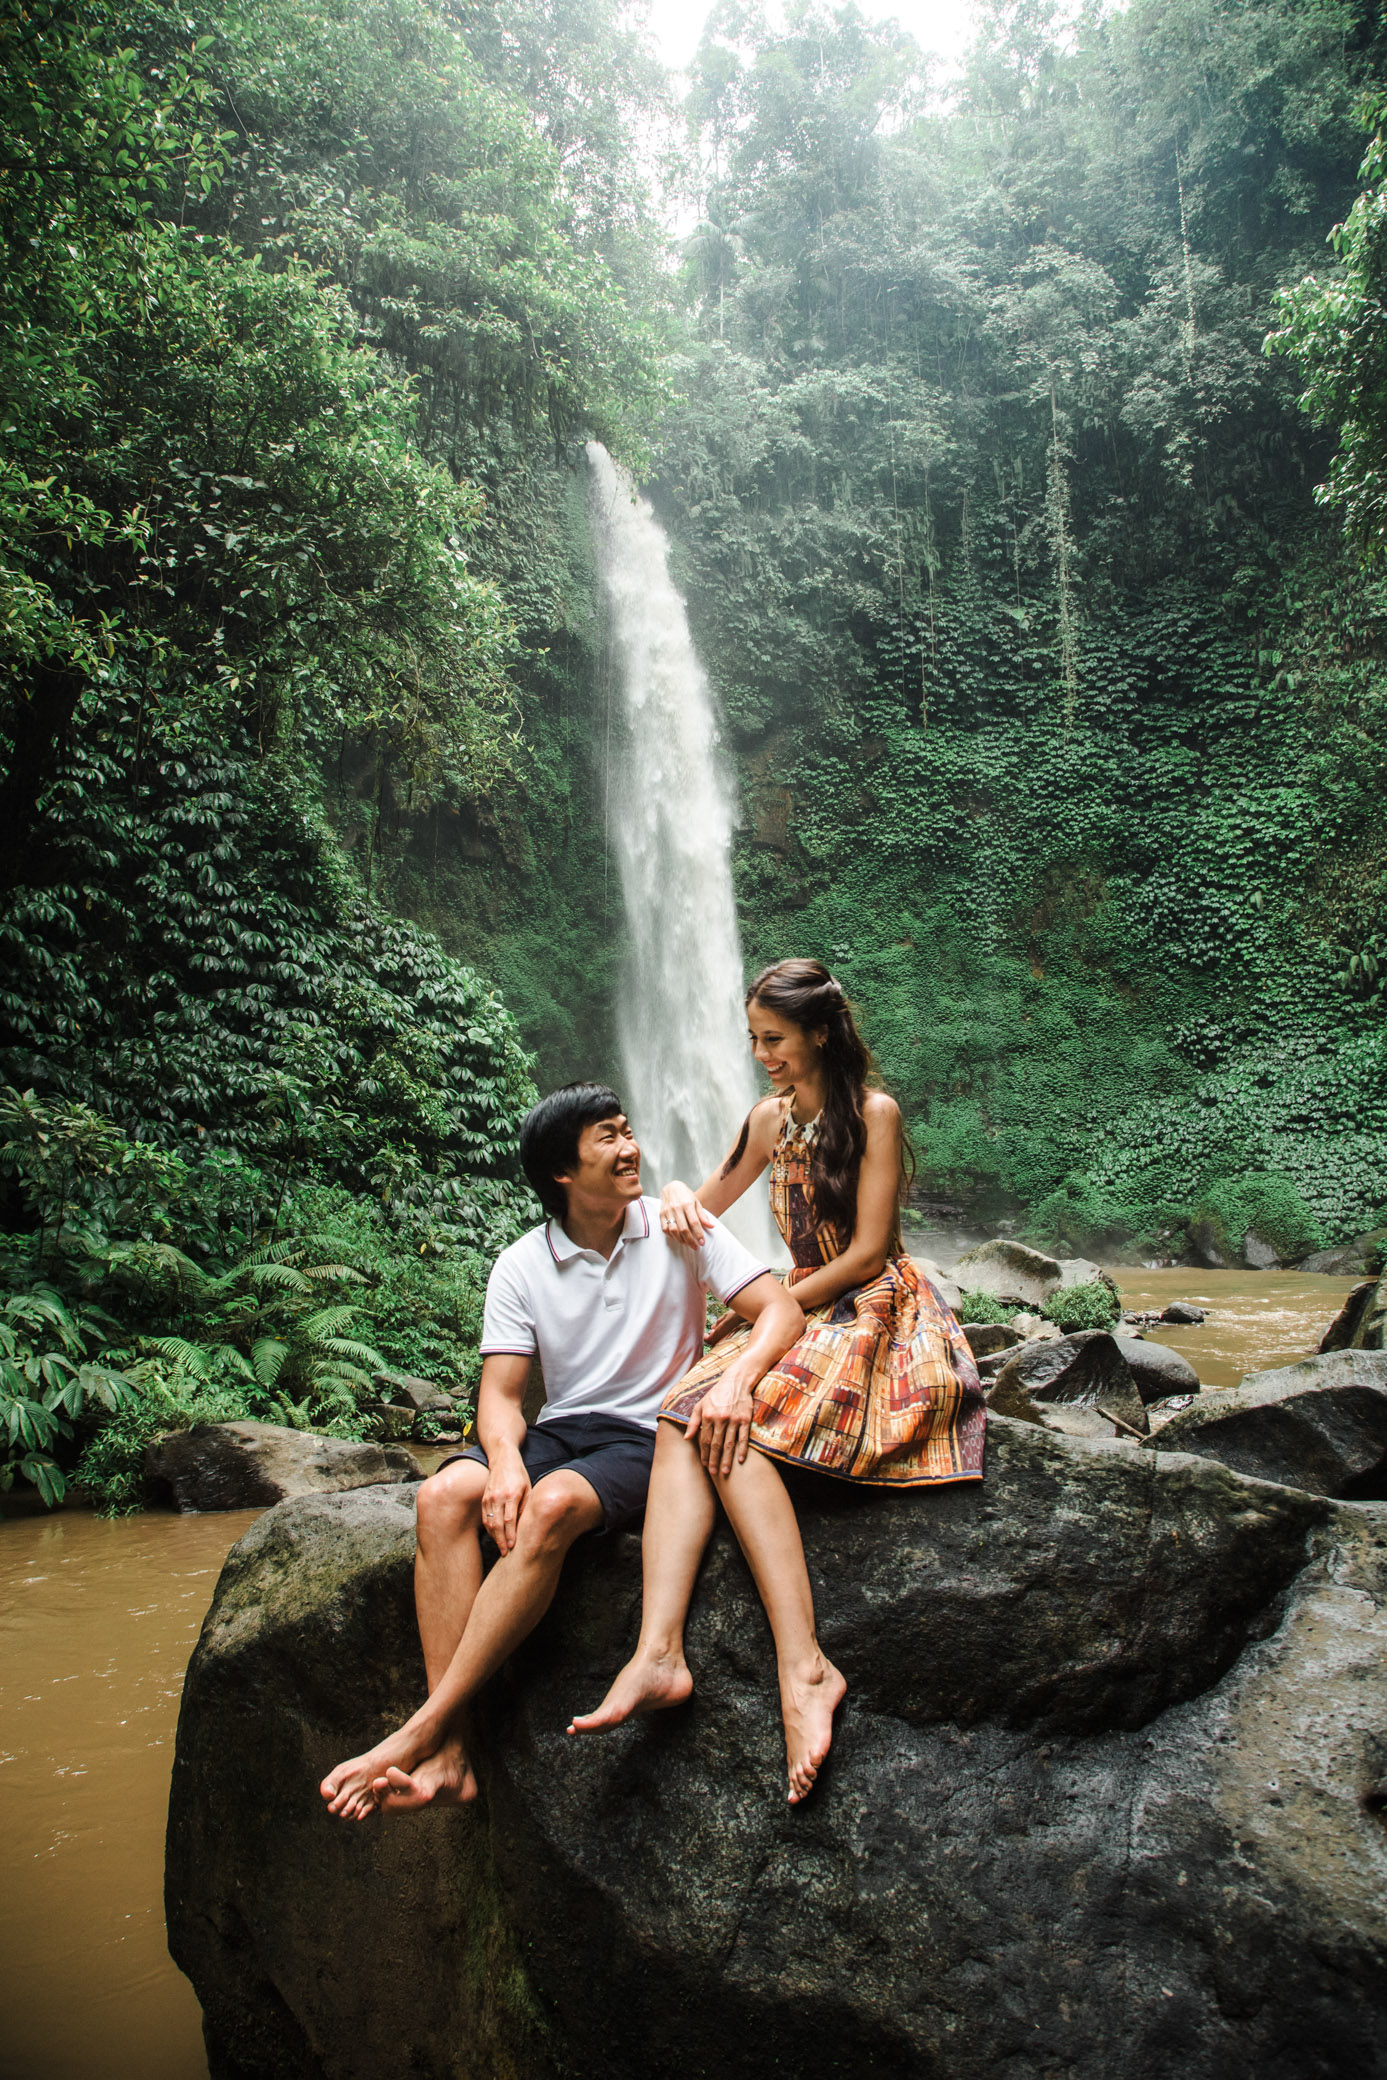 Lovers sit on a stone near waterfall